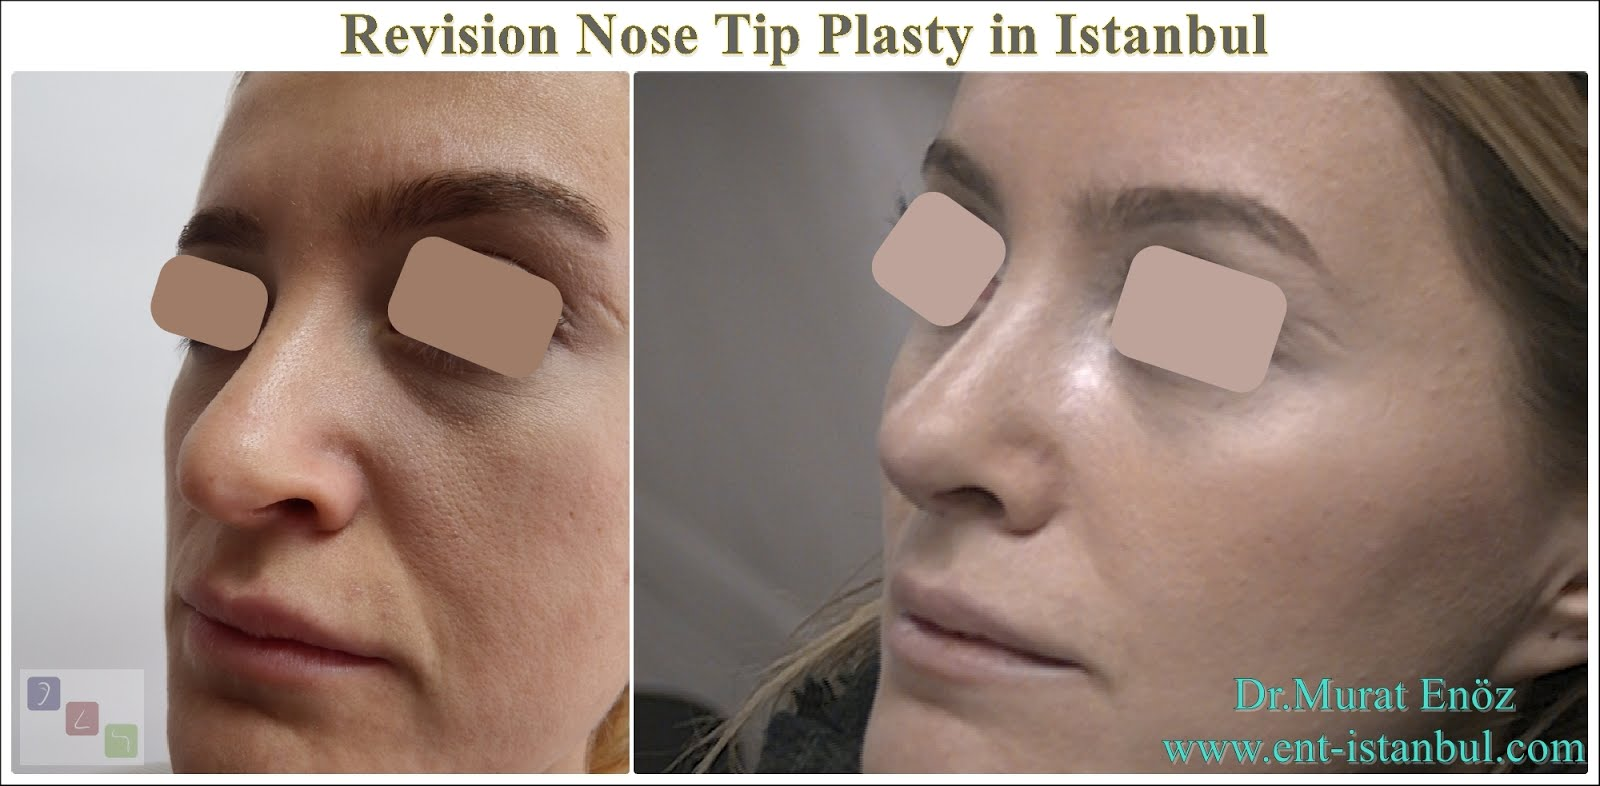 Revision Nose Tip Plasty in Istanbul